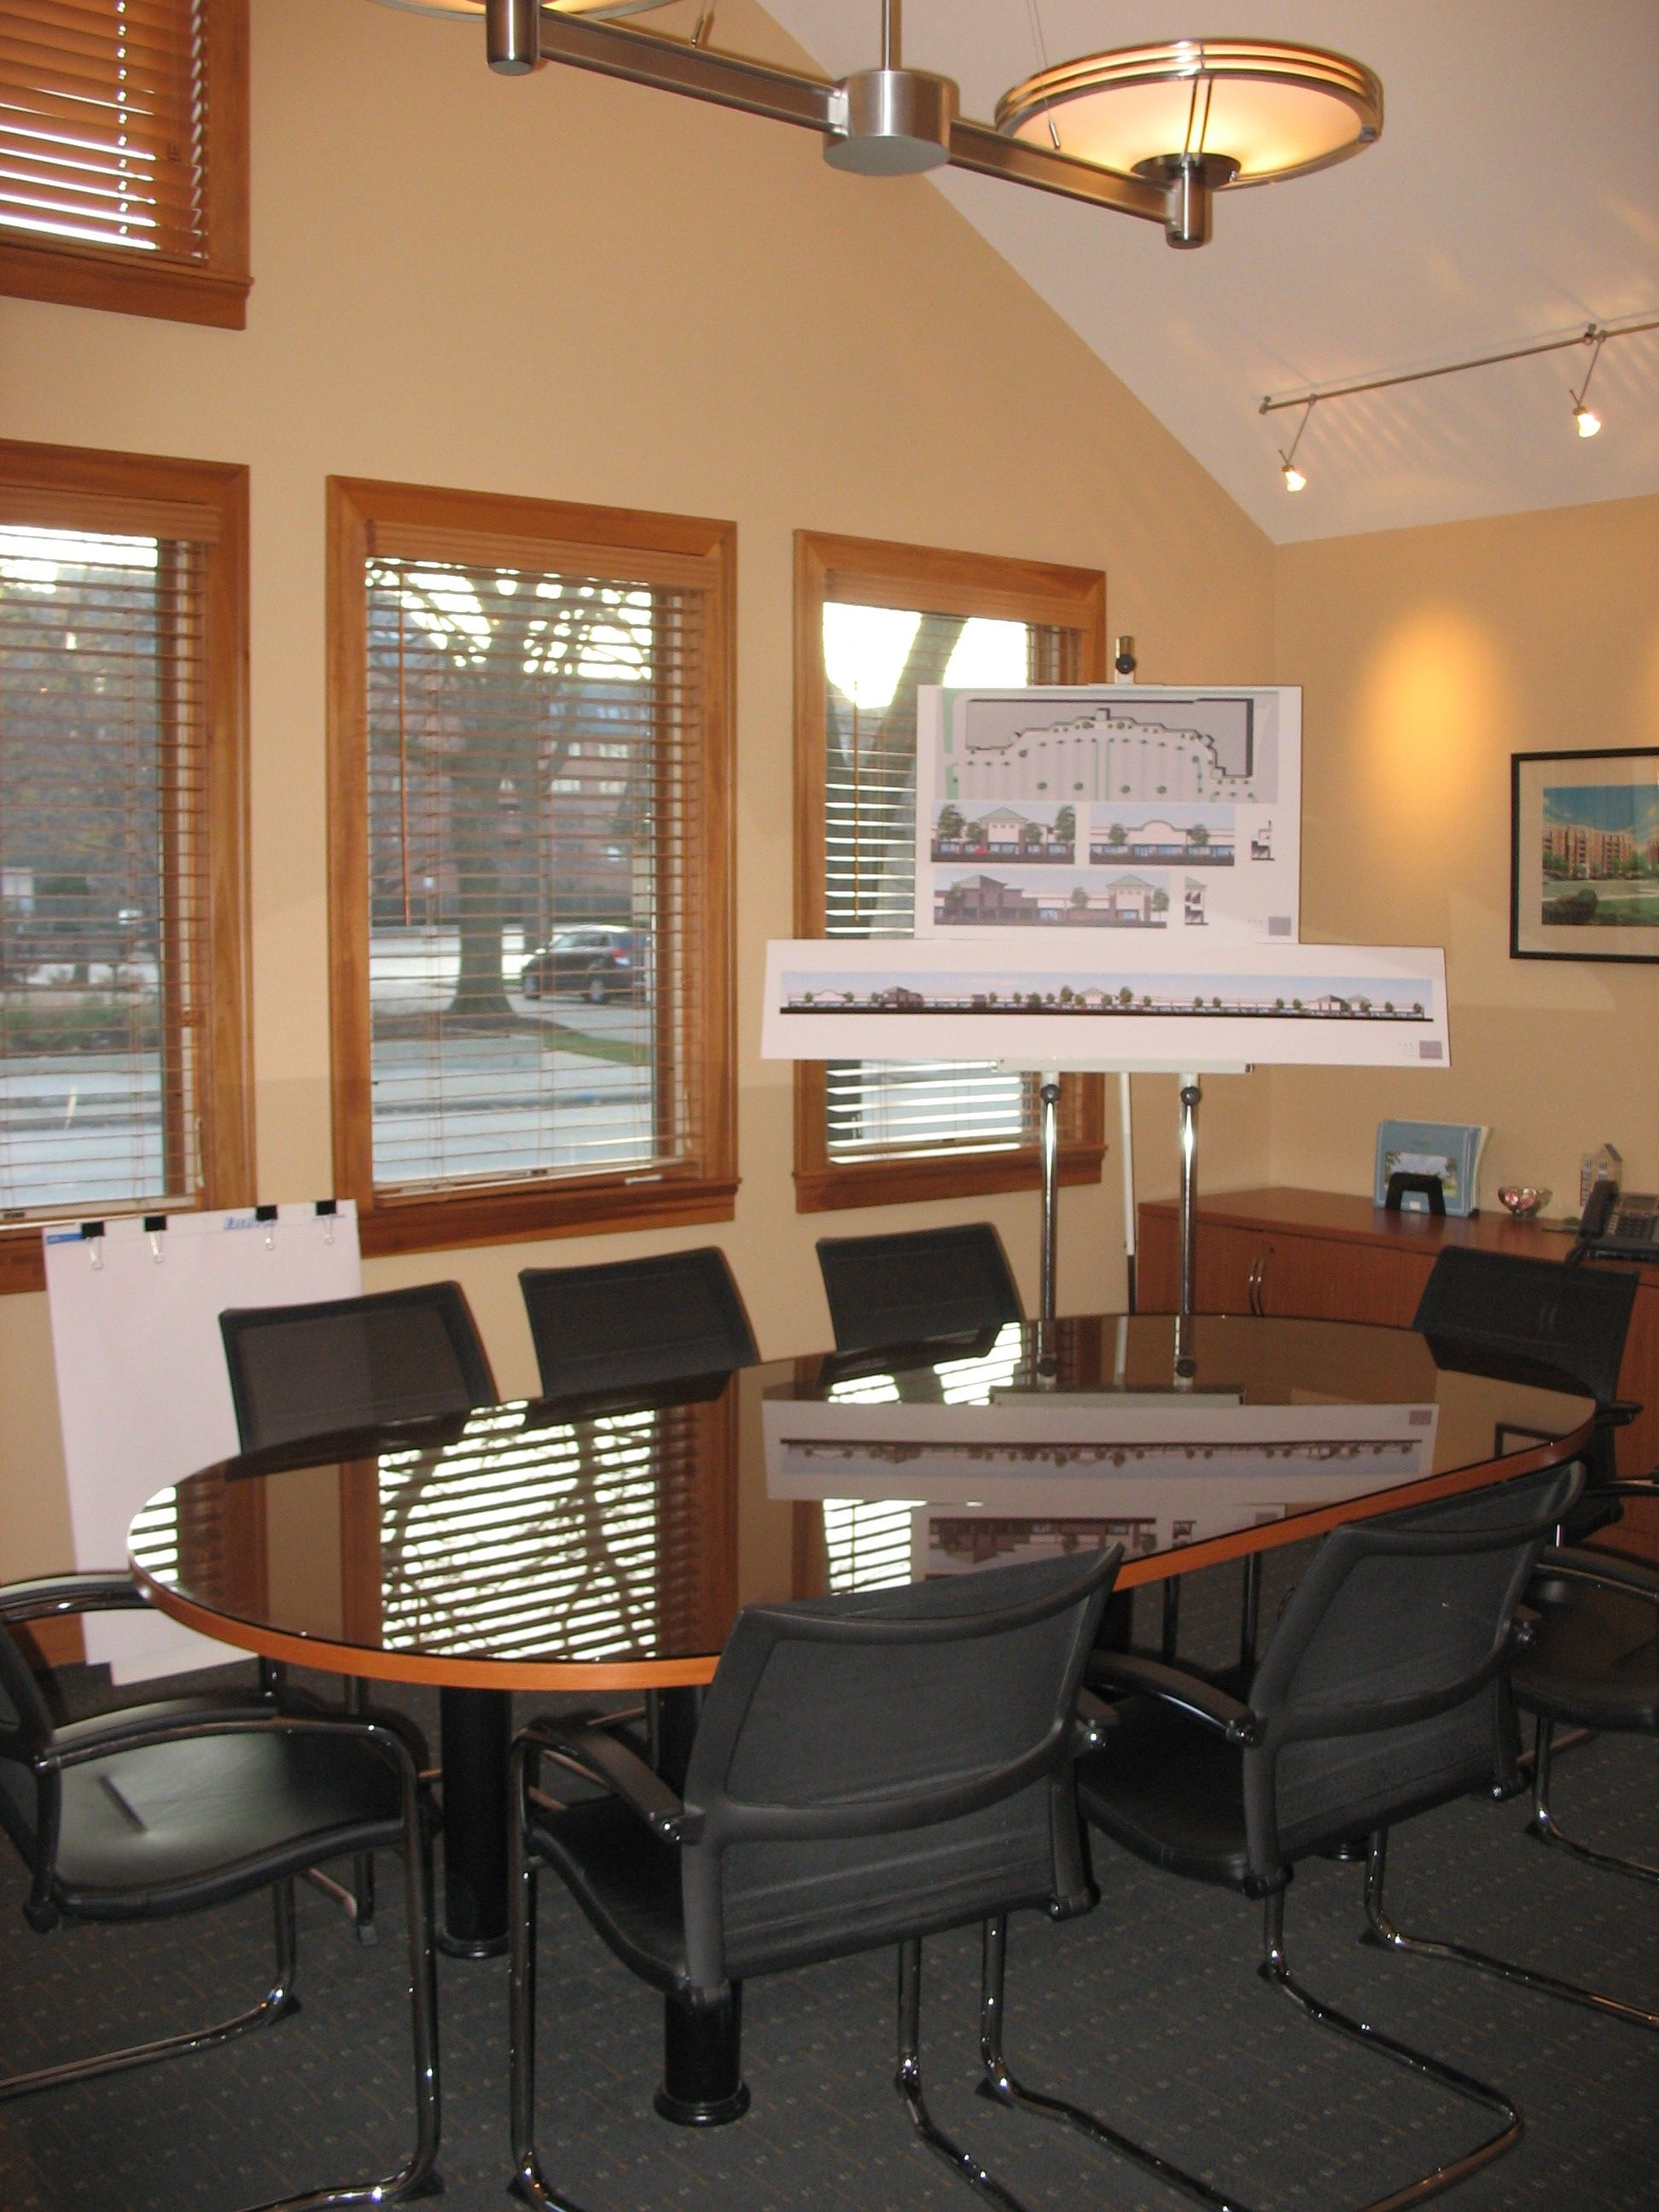 0215 Corporate Office, Park Ridge IL With the addition of